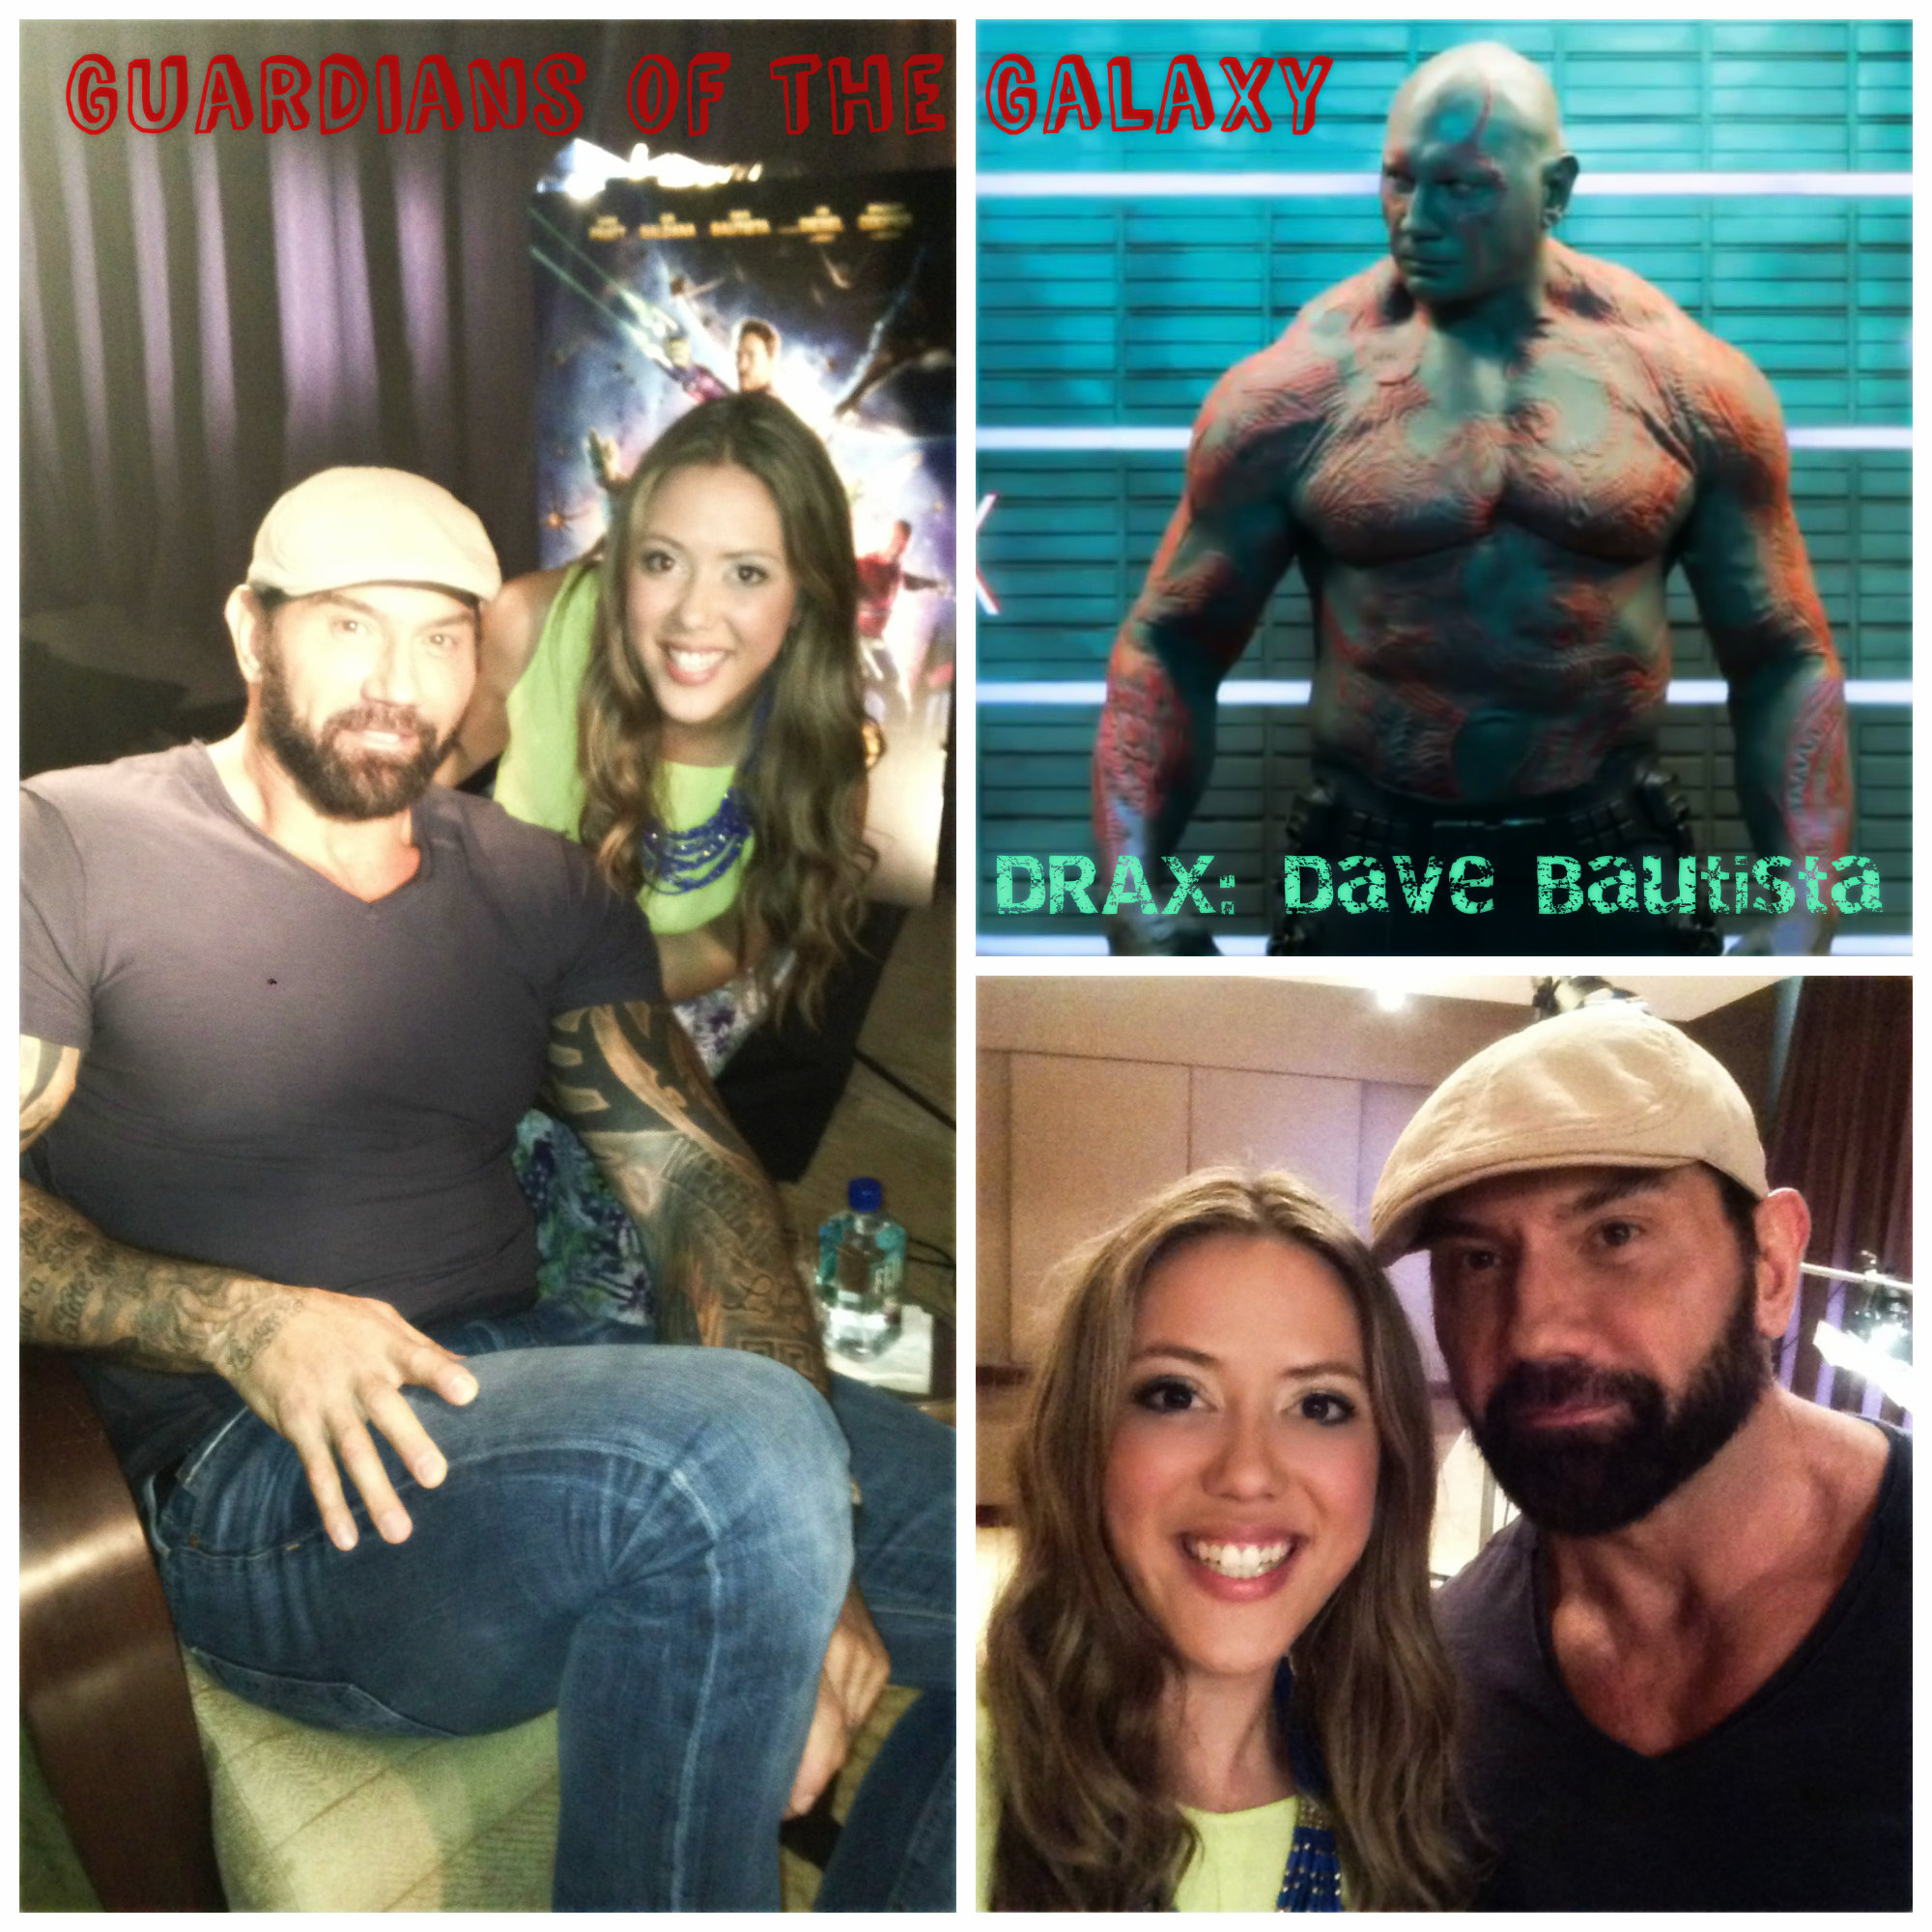 Guardians of the Galaxy with Dave Bautista